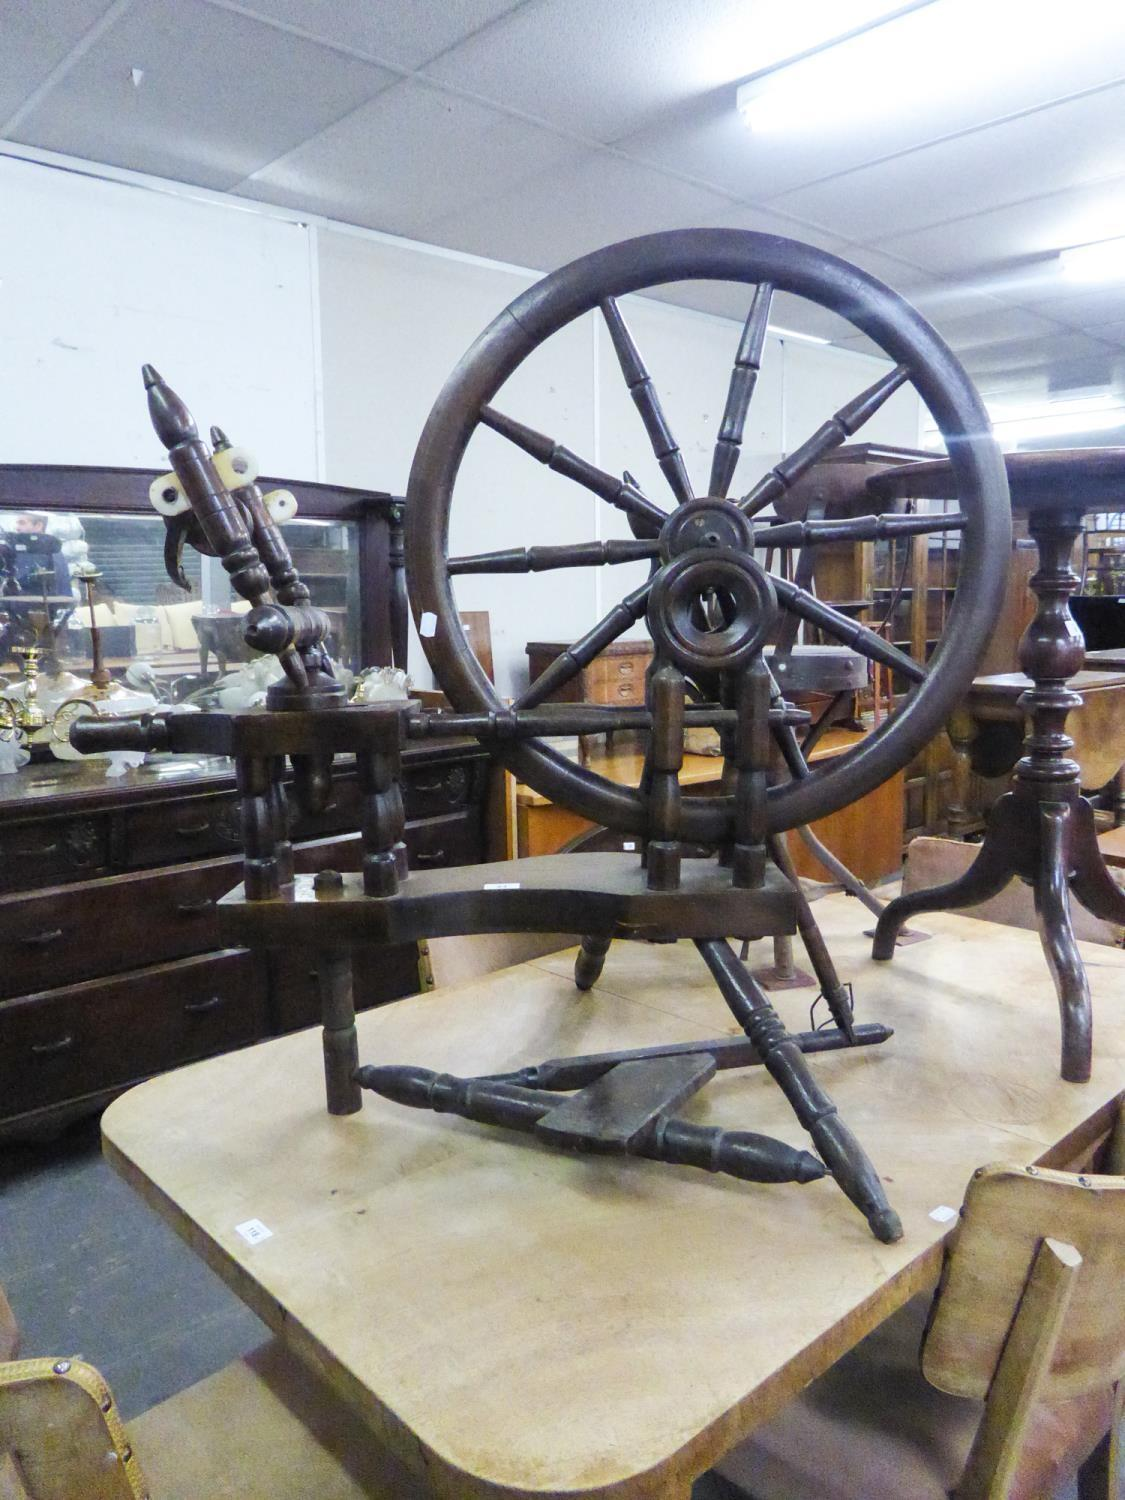 Lot 445 - AN ANTIQUE LARGE SPINNING WHEEL